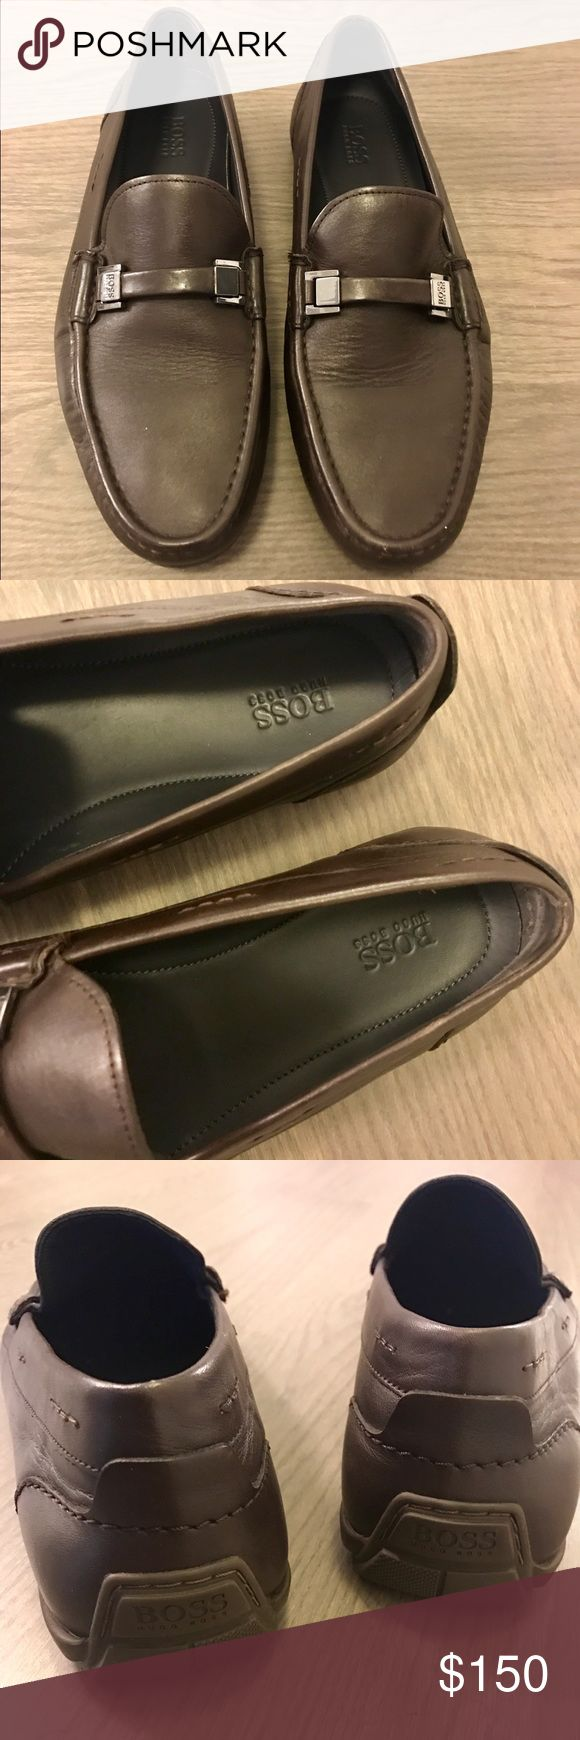 Hugo Boss Brown Leather Loafers Worn once, were too small for my boyfriend so he's selling. Excellent condition, like new. My first men's listing! Hugo Boss Shoes Loafers & Slip-Ons